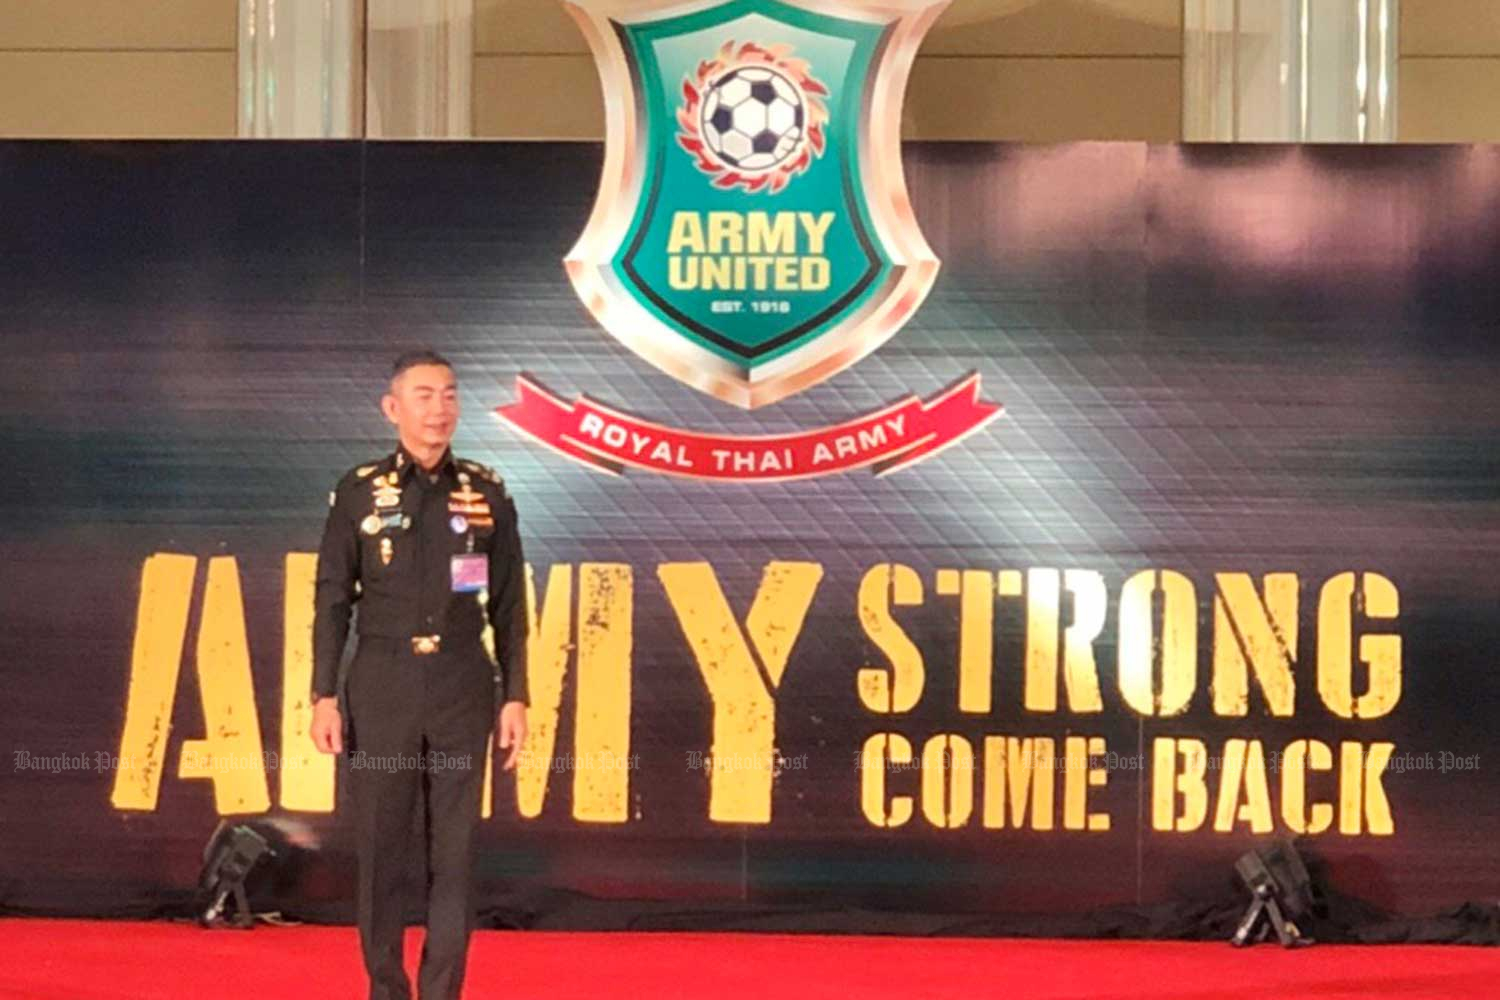 Army chief Gen Apirat Kongsompong hads suspended the Army United football team because of its continued poor performance, and the 103-year-old club is expected to be shutdown. (Photo by Wassana Nanuam)